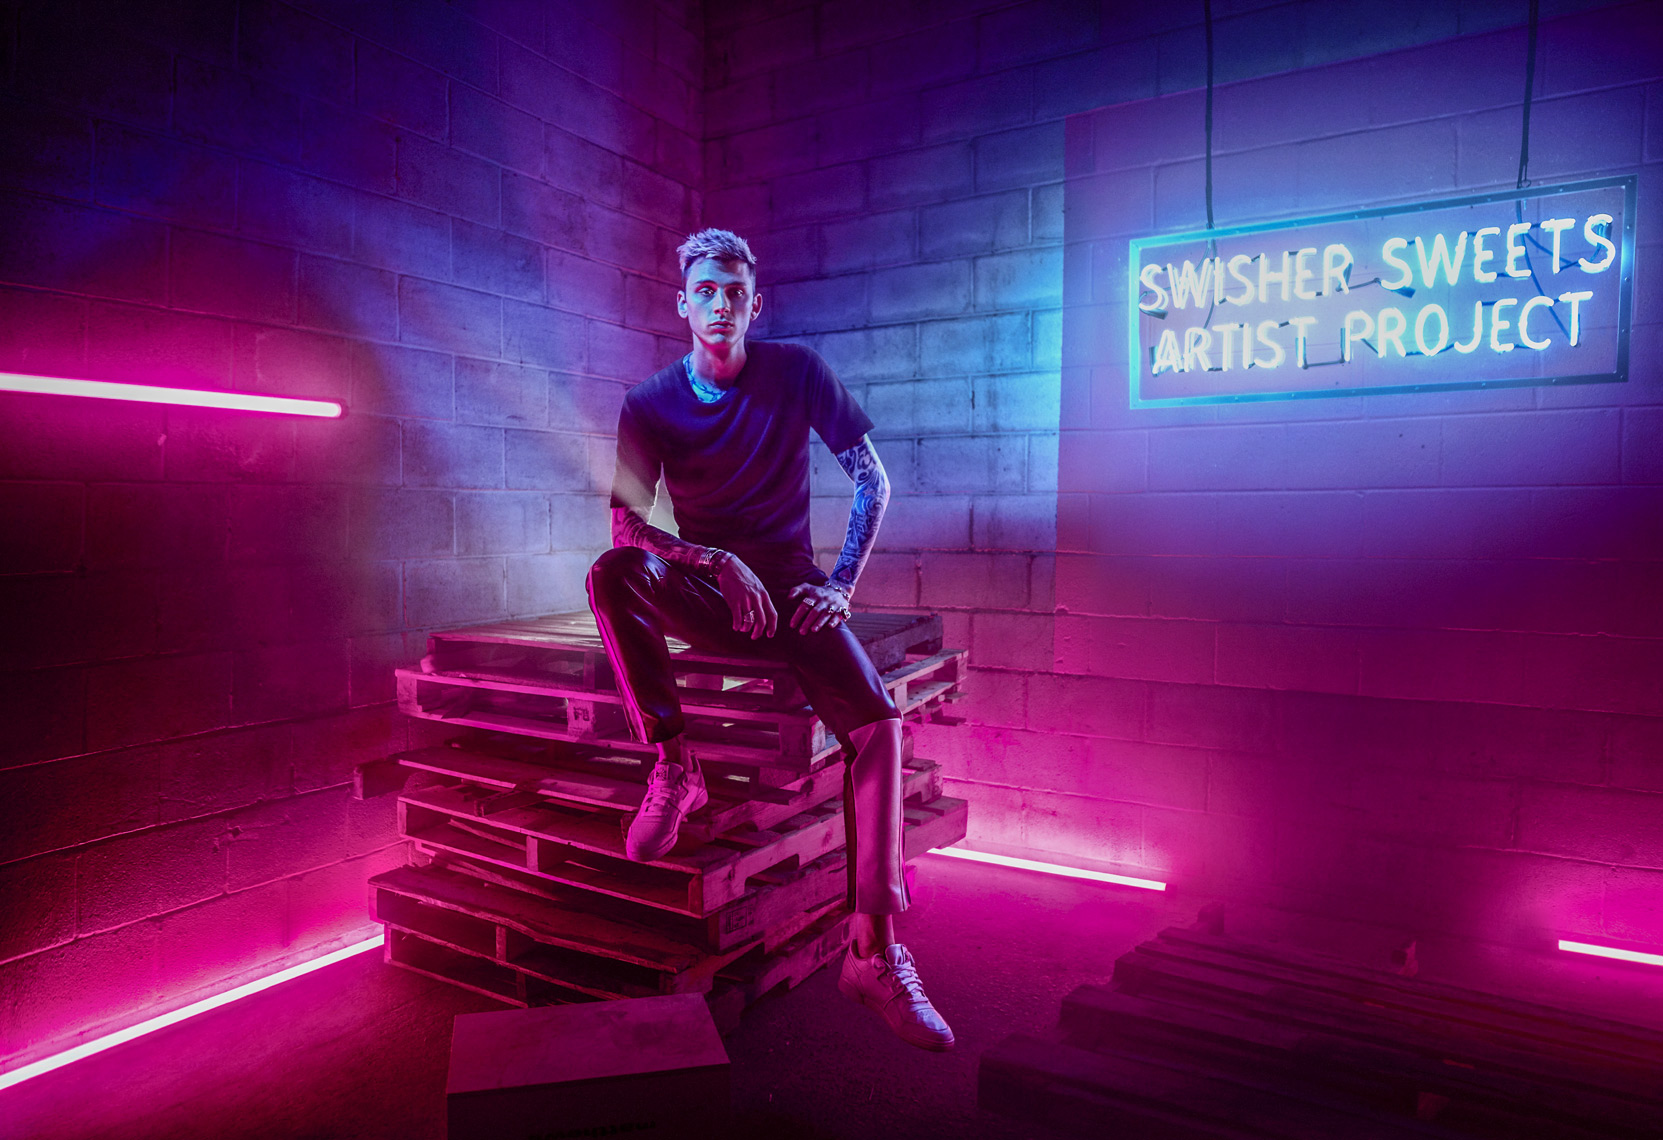 MGK aka Machine Gun Kelly photographed in Nashville, TN a for campaign for Swisher Sweets.